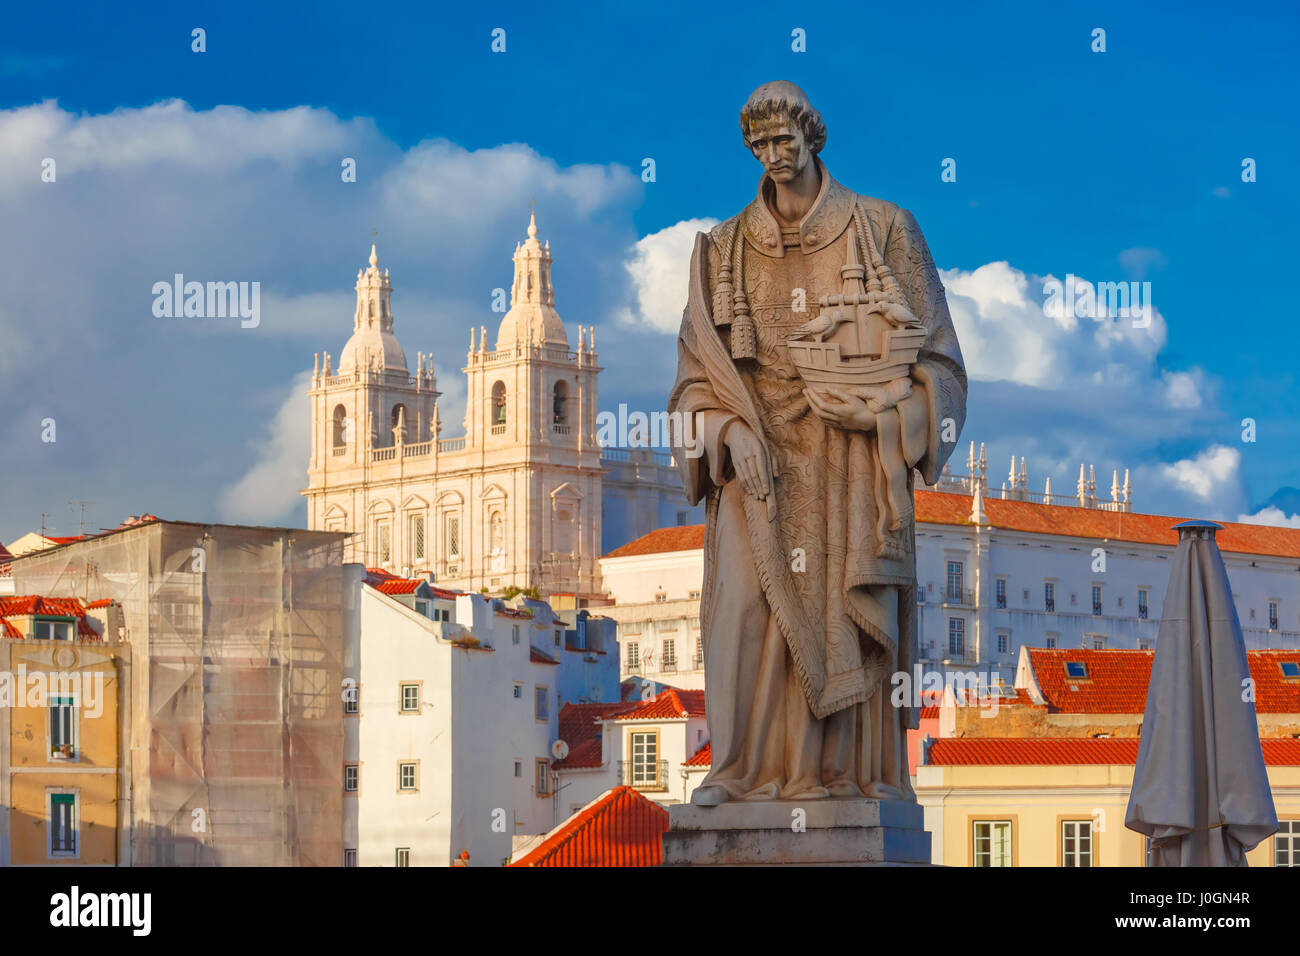 Statue of Saint Vincent, the patron saint of Lisbon, in Alfama, Lisbon, Portugal. Monastery of Sao Vicente de Fora - Stock Image